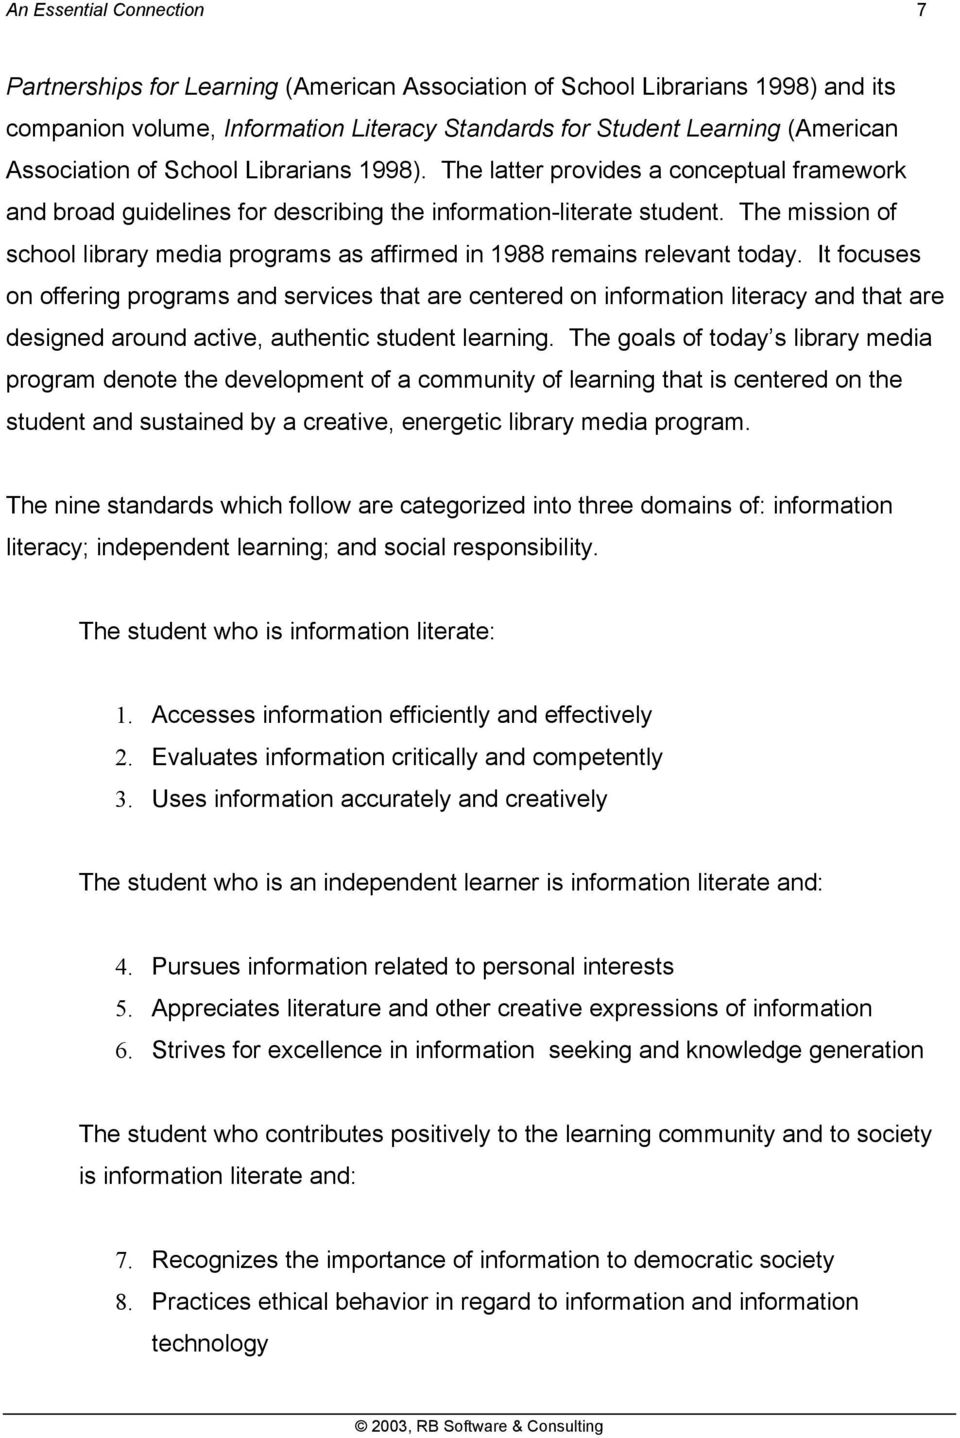 The mission of school library media programs as affirmed in 1988 remains relevant today.